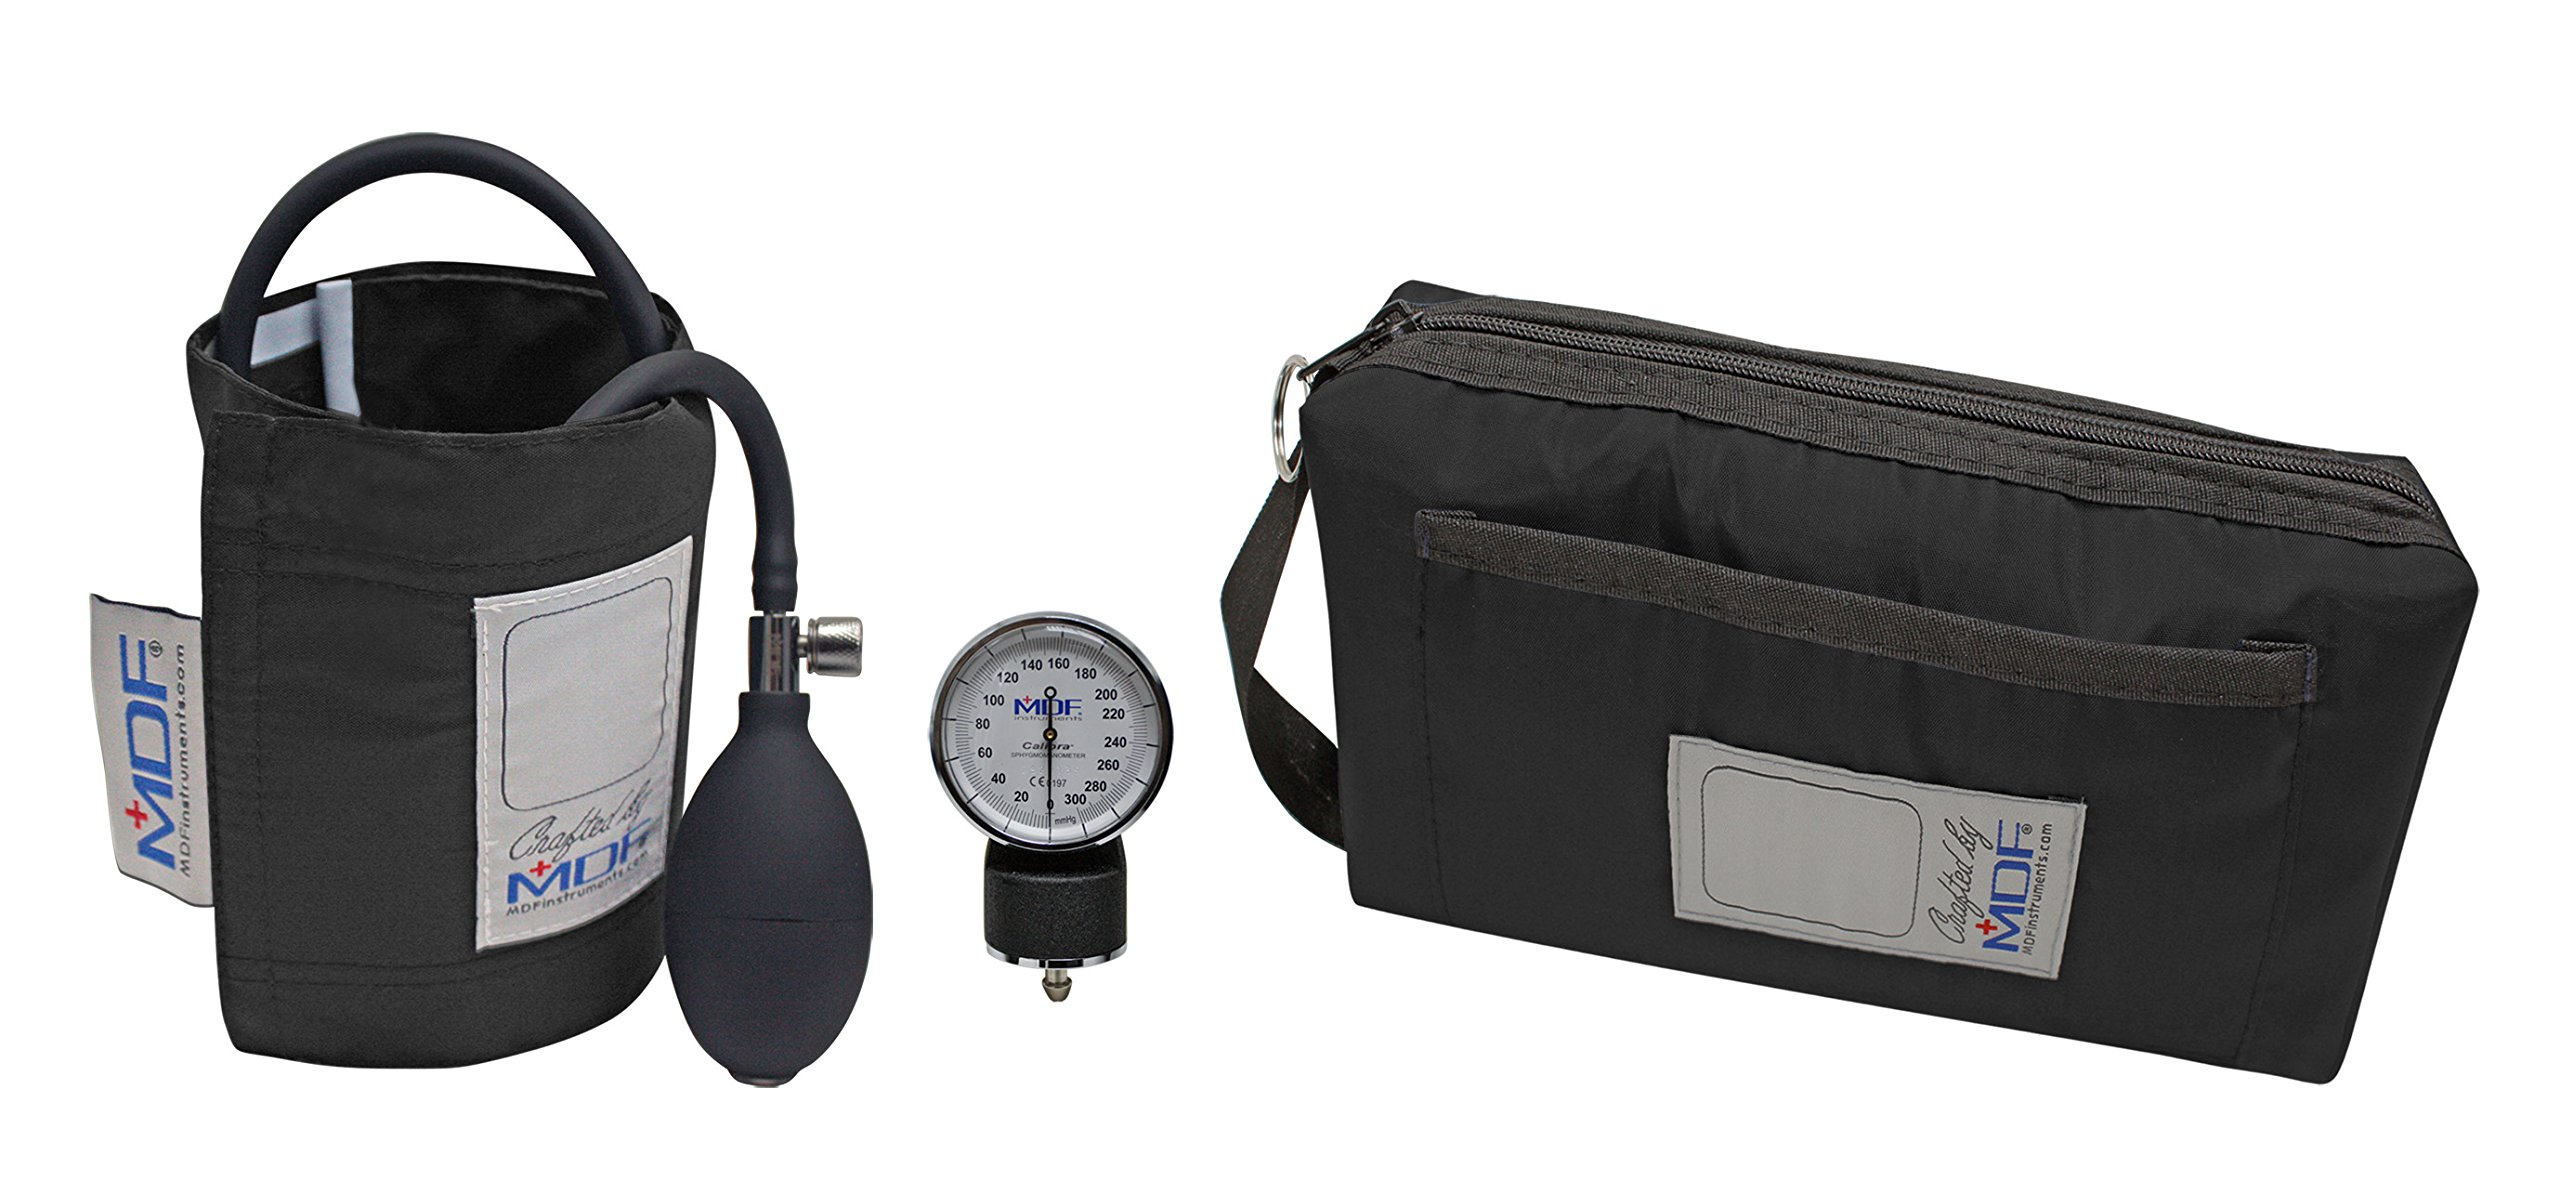 MDF® Calibra Aneroid Sphygmomanometer - Lifetime Calibration Warranty - Blood Pressure Monitor with Adult Sized Cuff Included - Black (MDF808M-11)